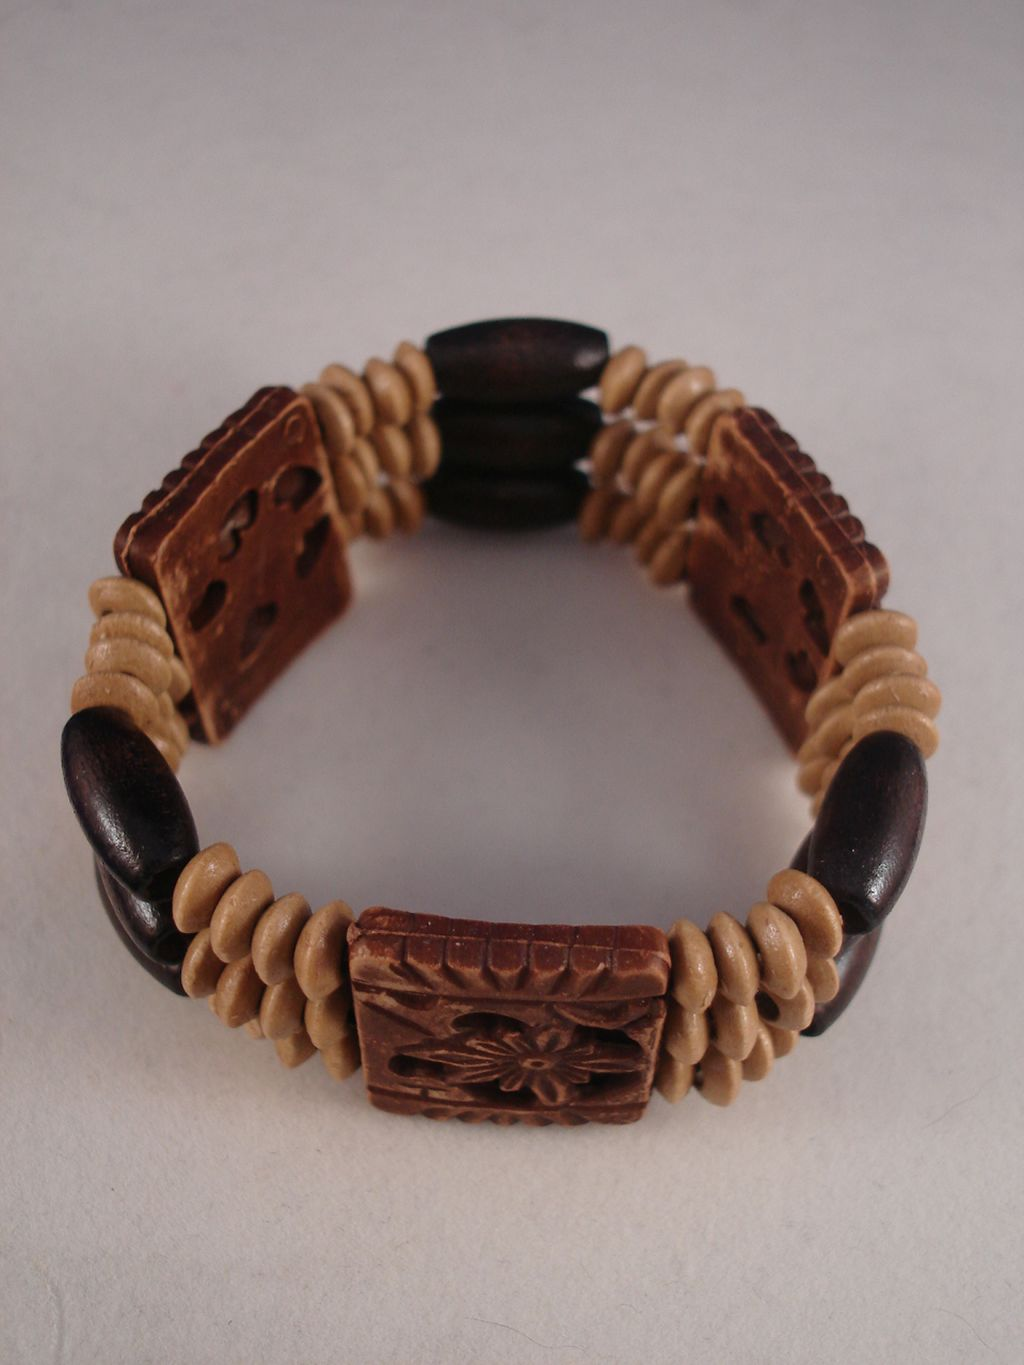 Brown Stretching Bracelet, Ceramic & Wood Beads, Anti-Allergic Jewelry